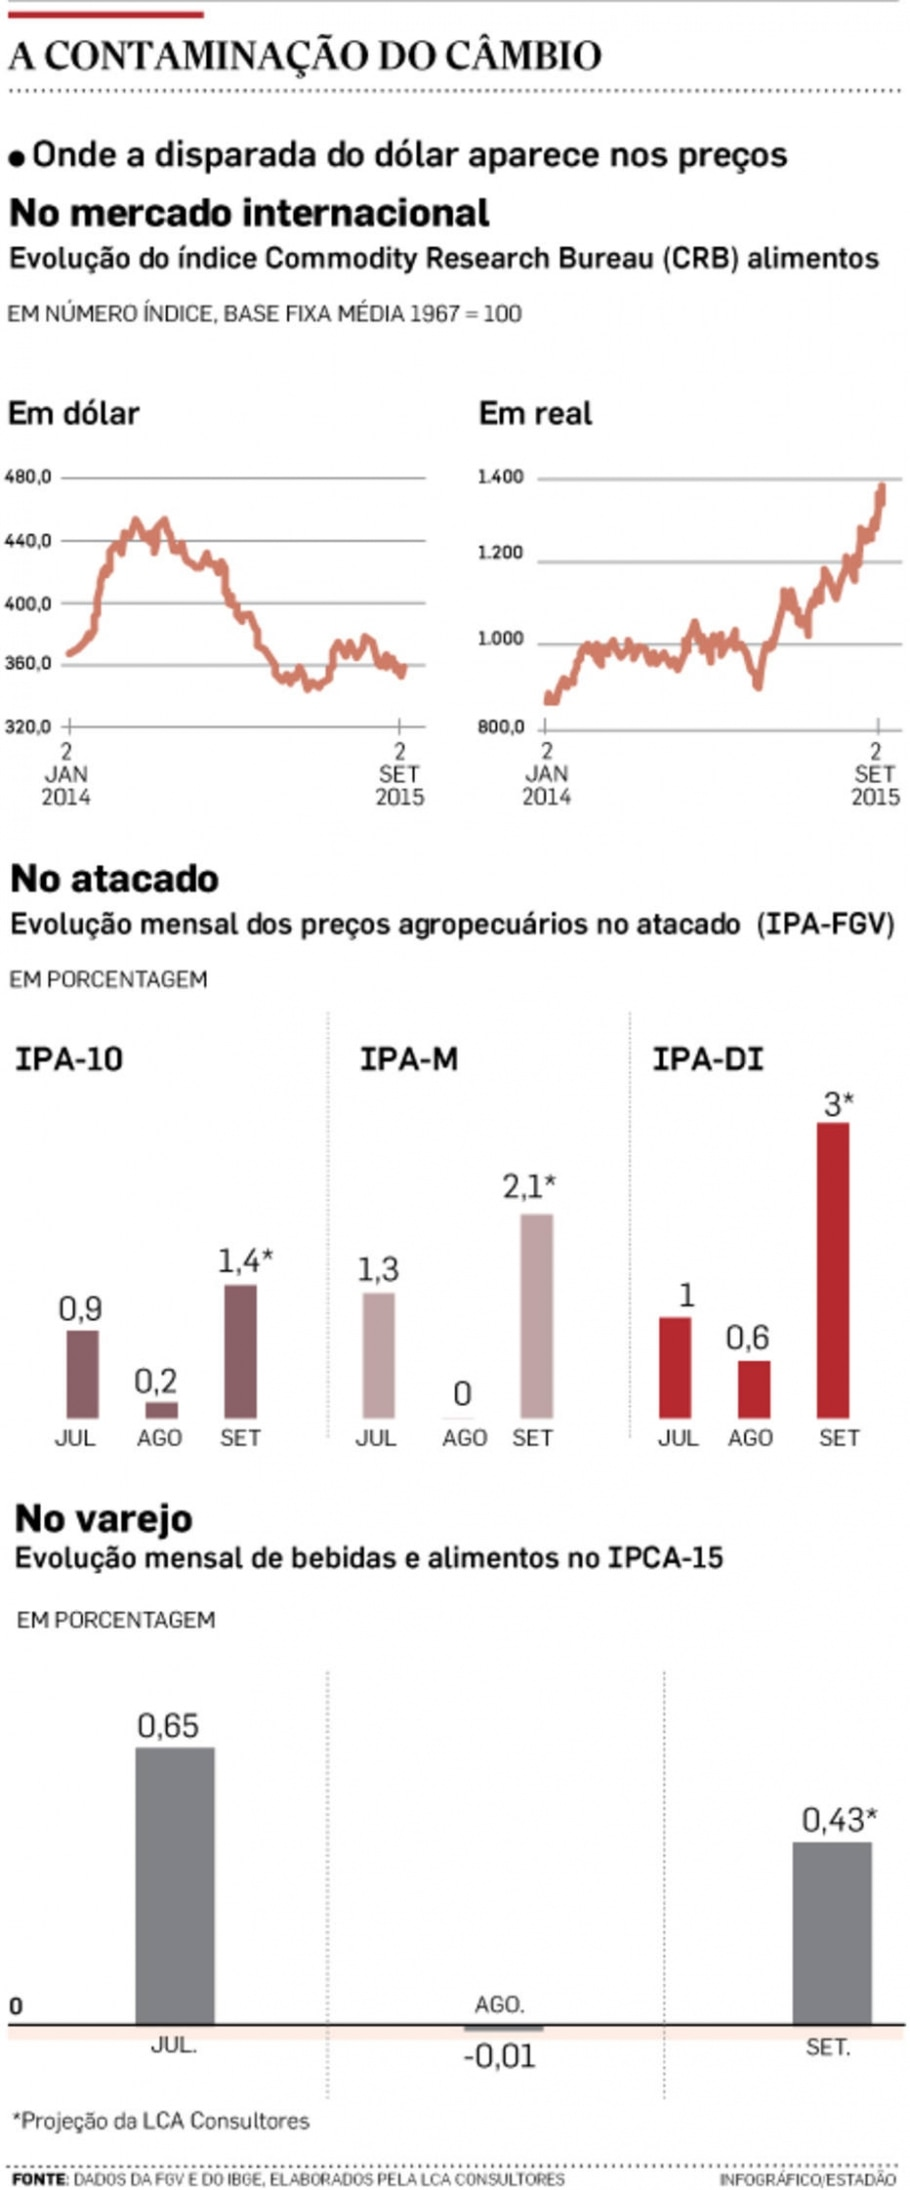 Disparada do dólar afeta IPCA de 2016 -